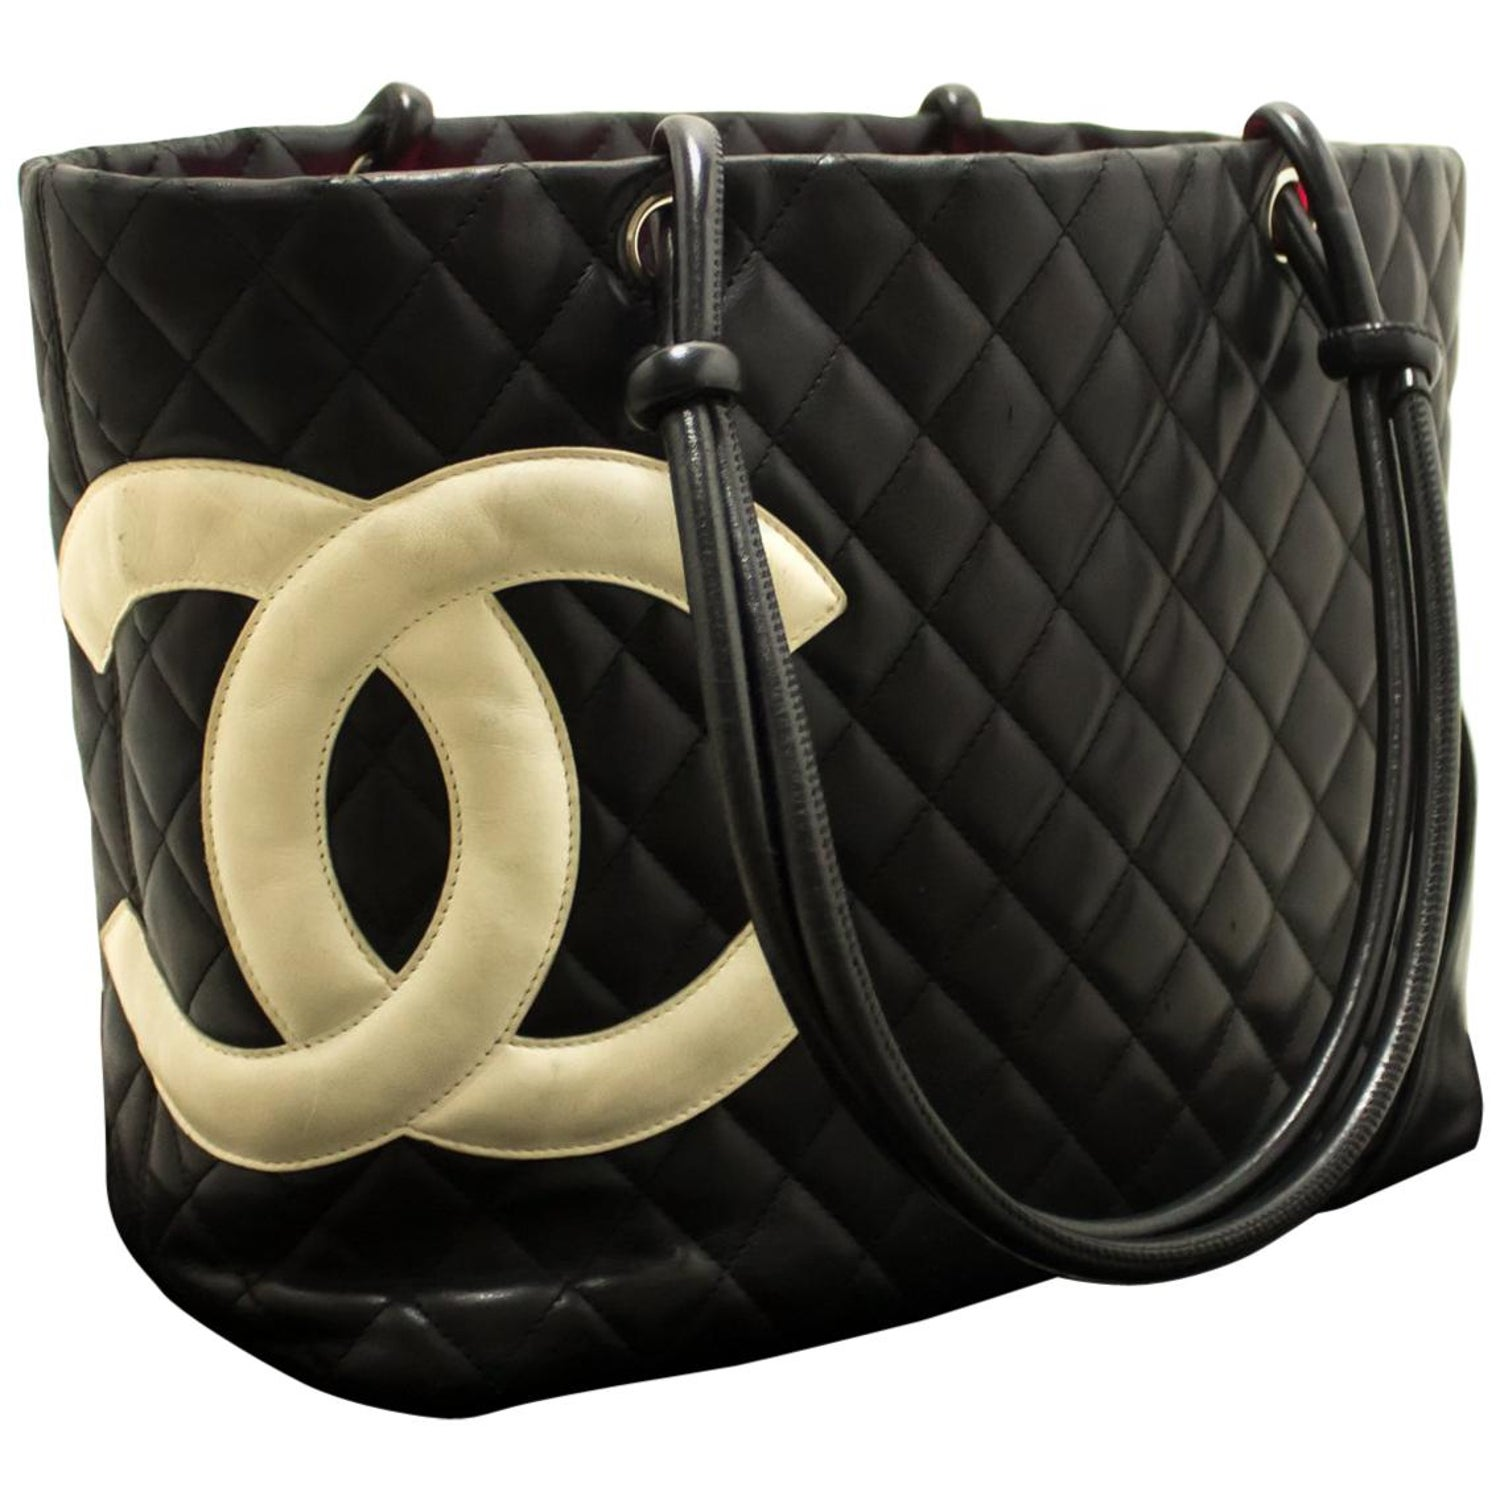 a48d879581c55b CHANEL Cambon Tote Large Shoulder Bag Black White Quilted Calfskin For Sale  at 1stdibs